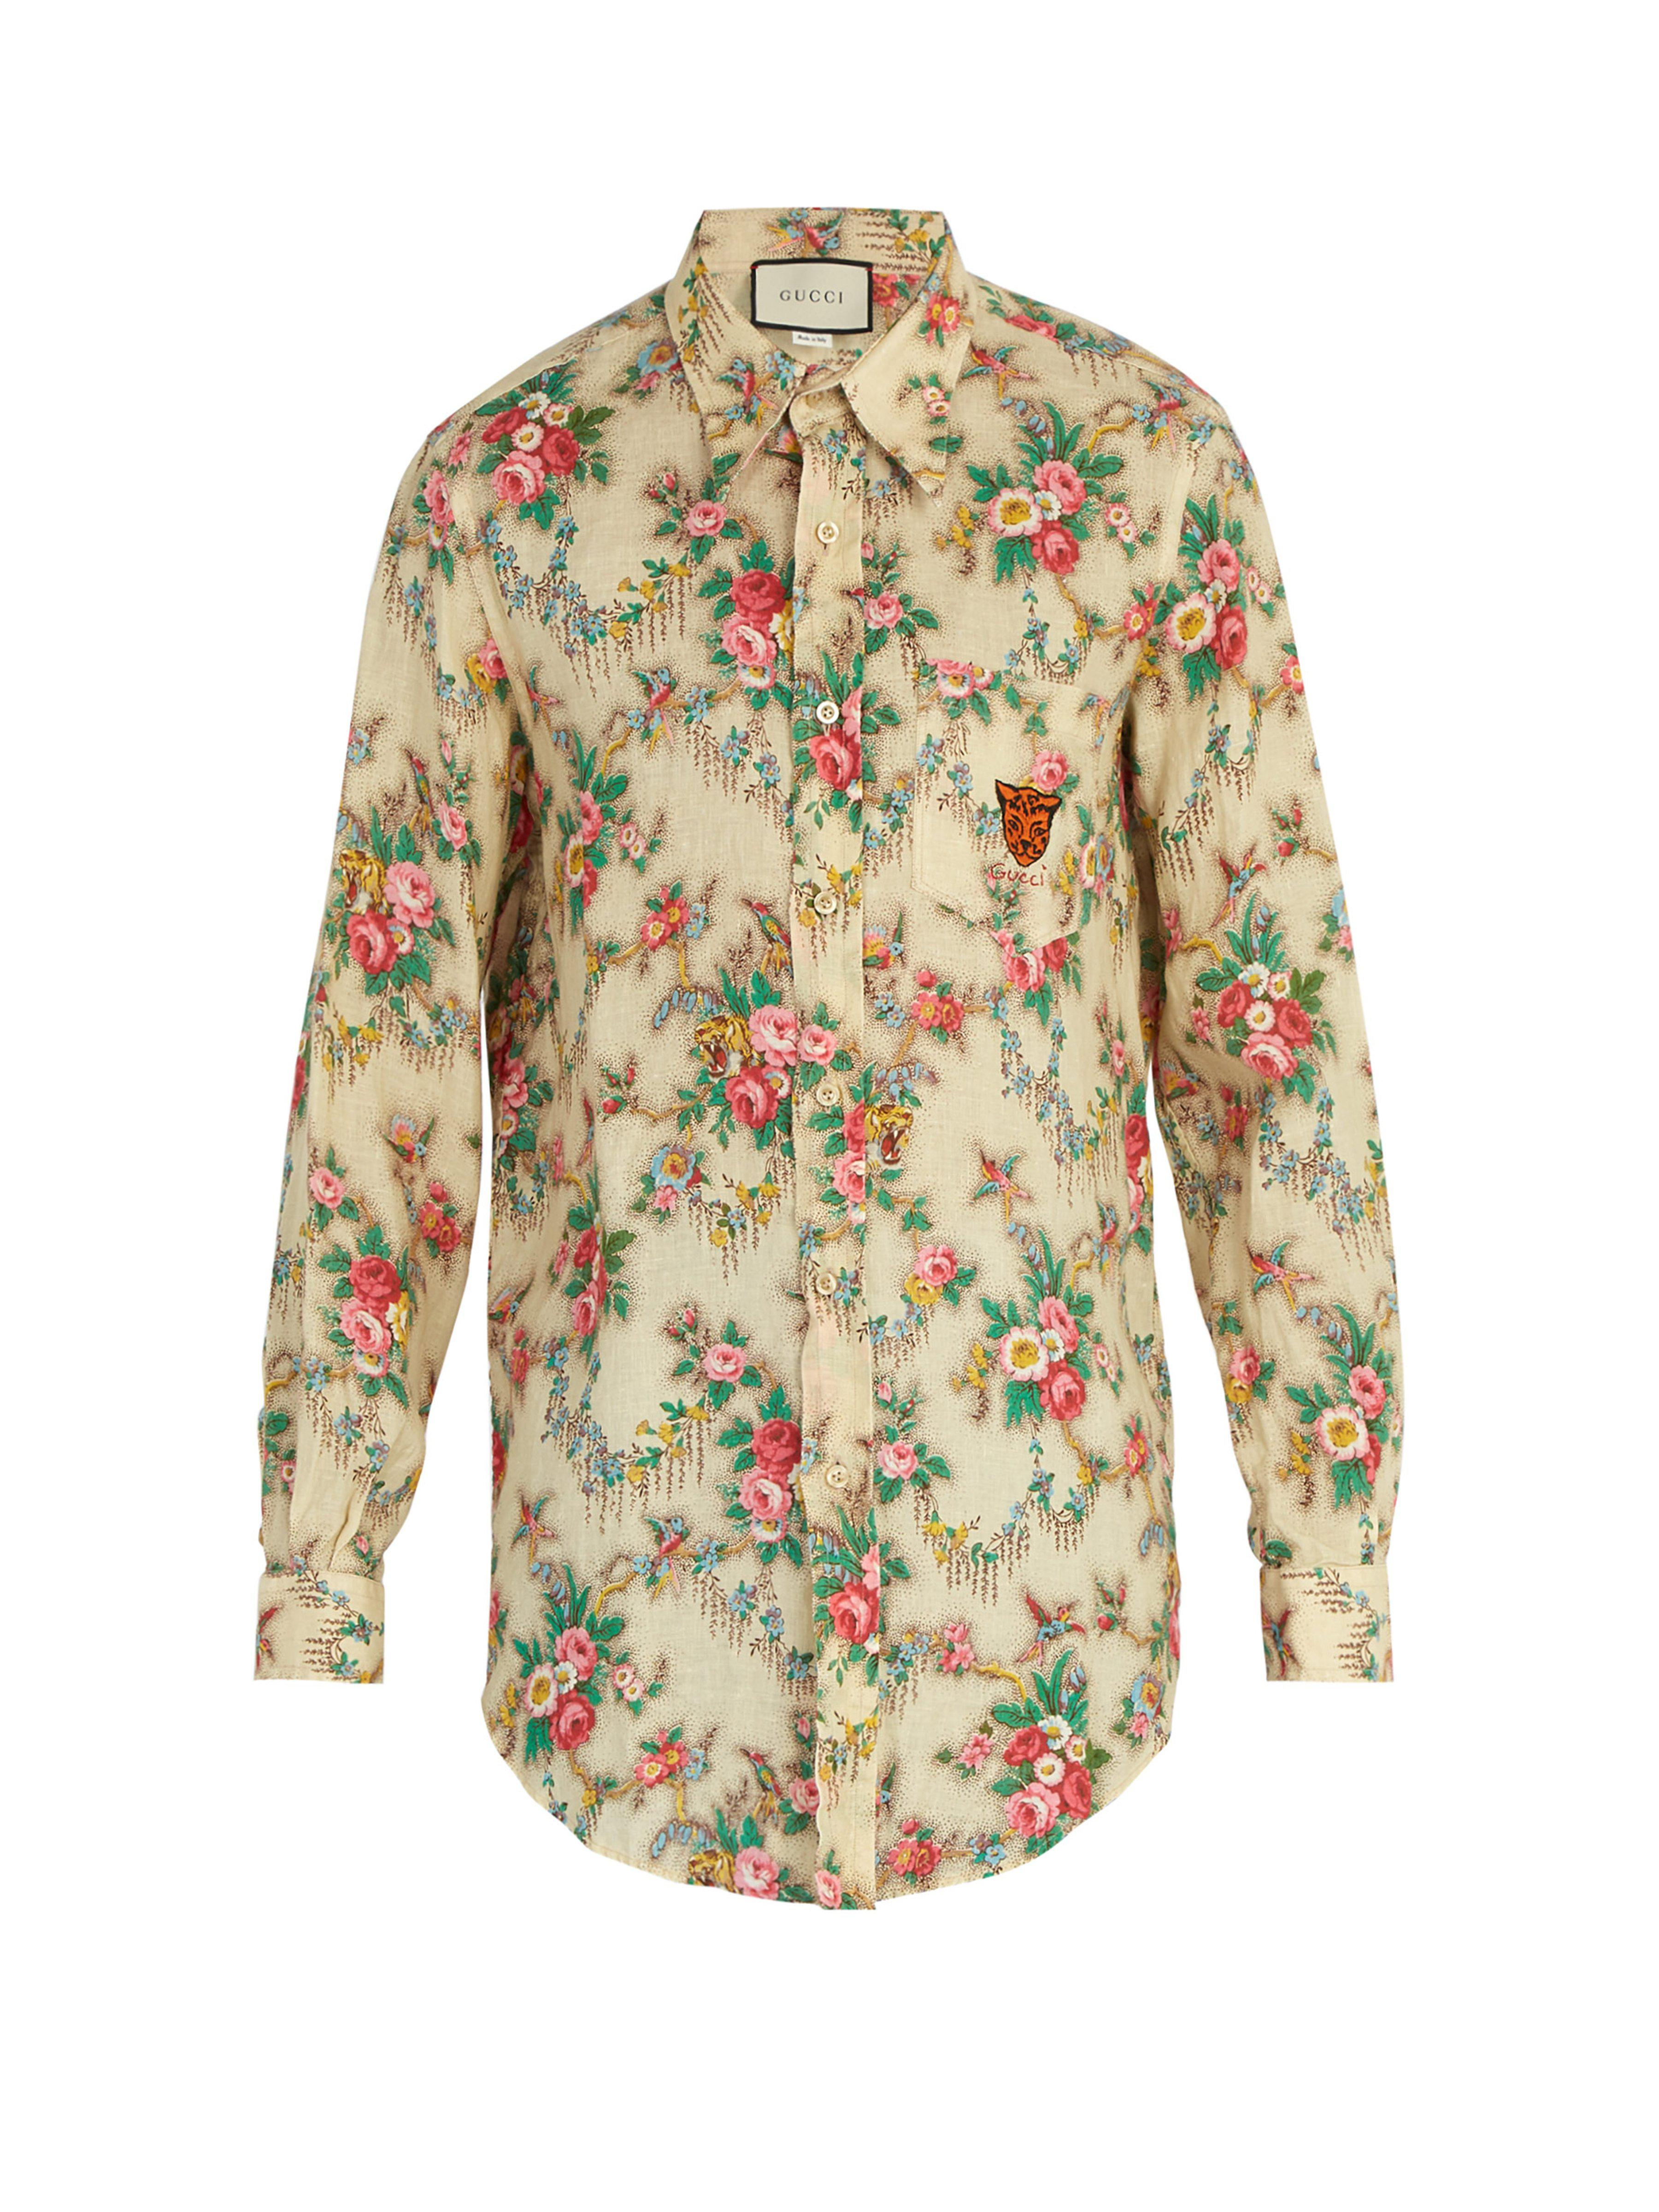 394b1adc41d2 Gucci Tiger Embroidered Floral Print Linen Shirt for Men - Lyst